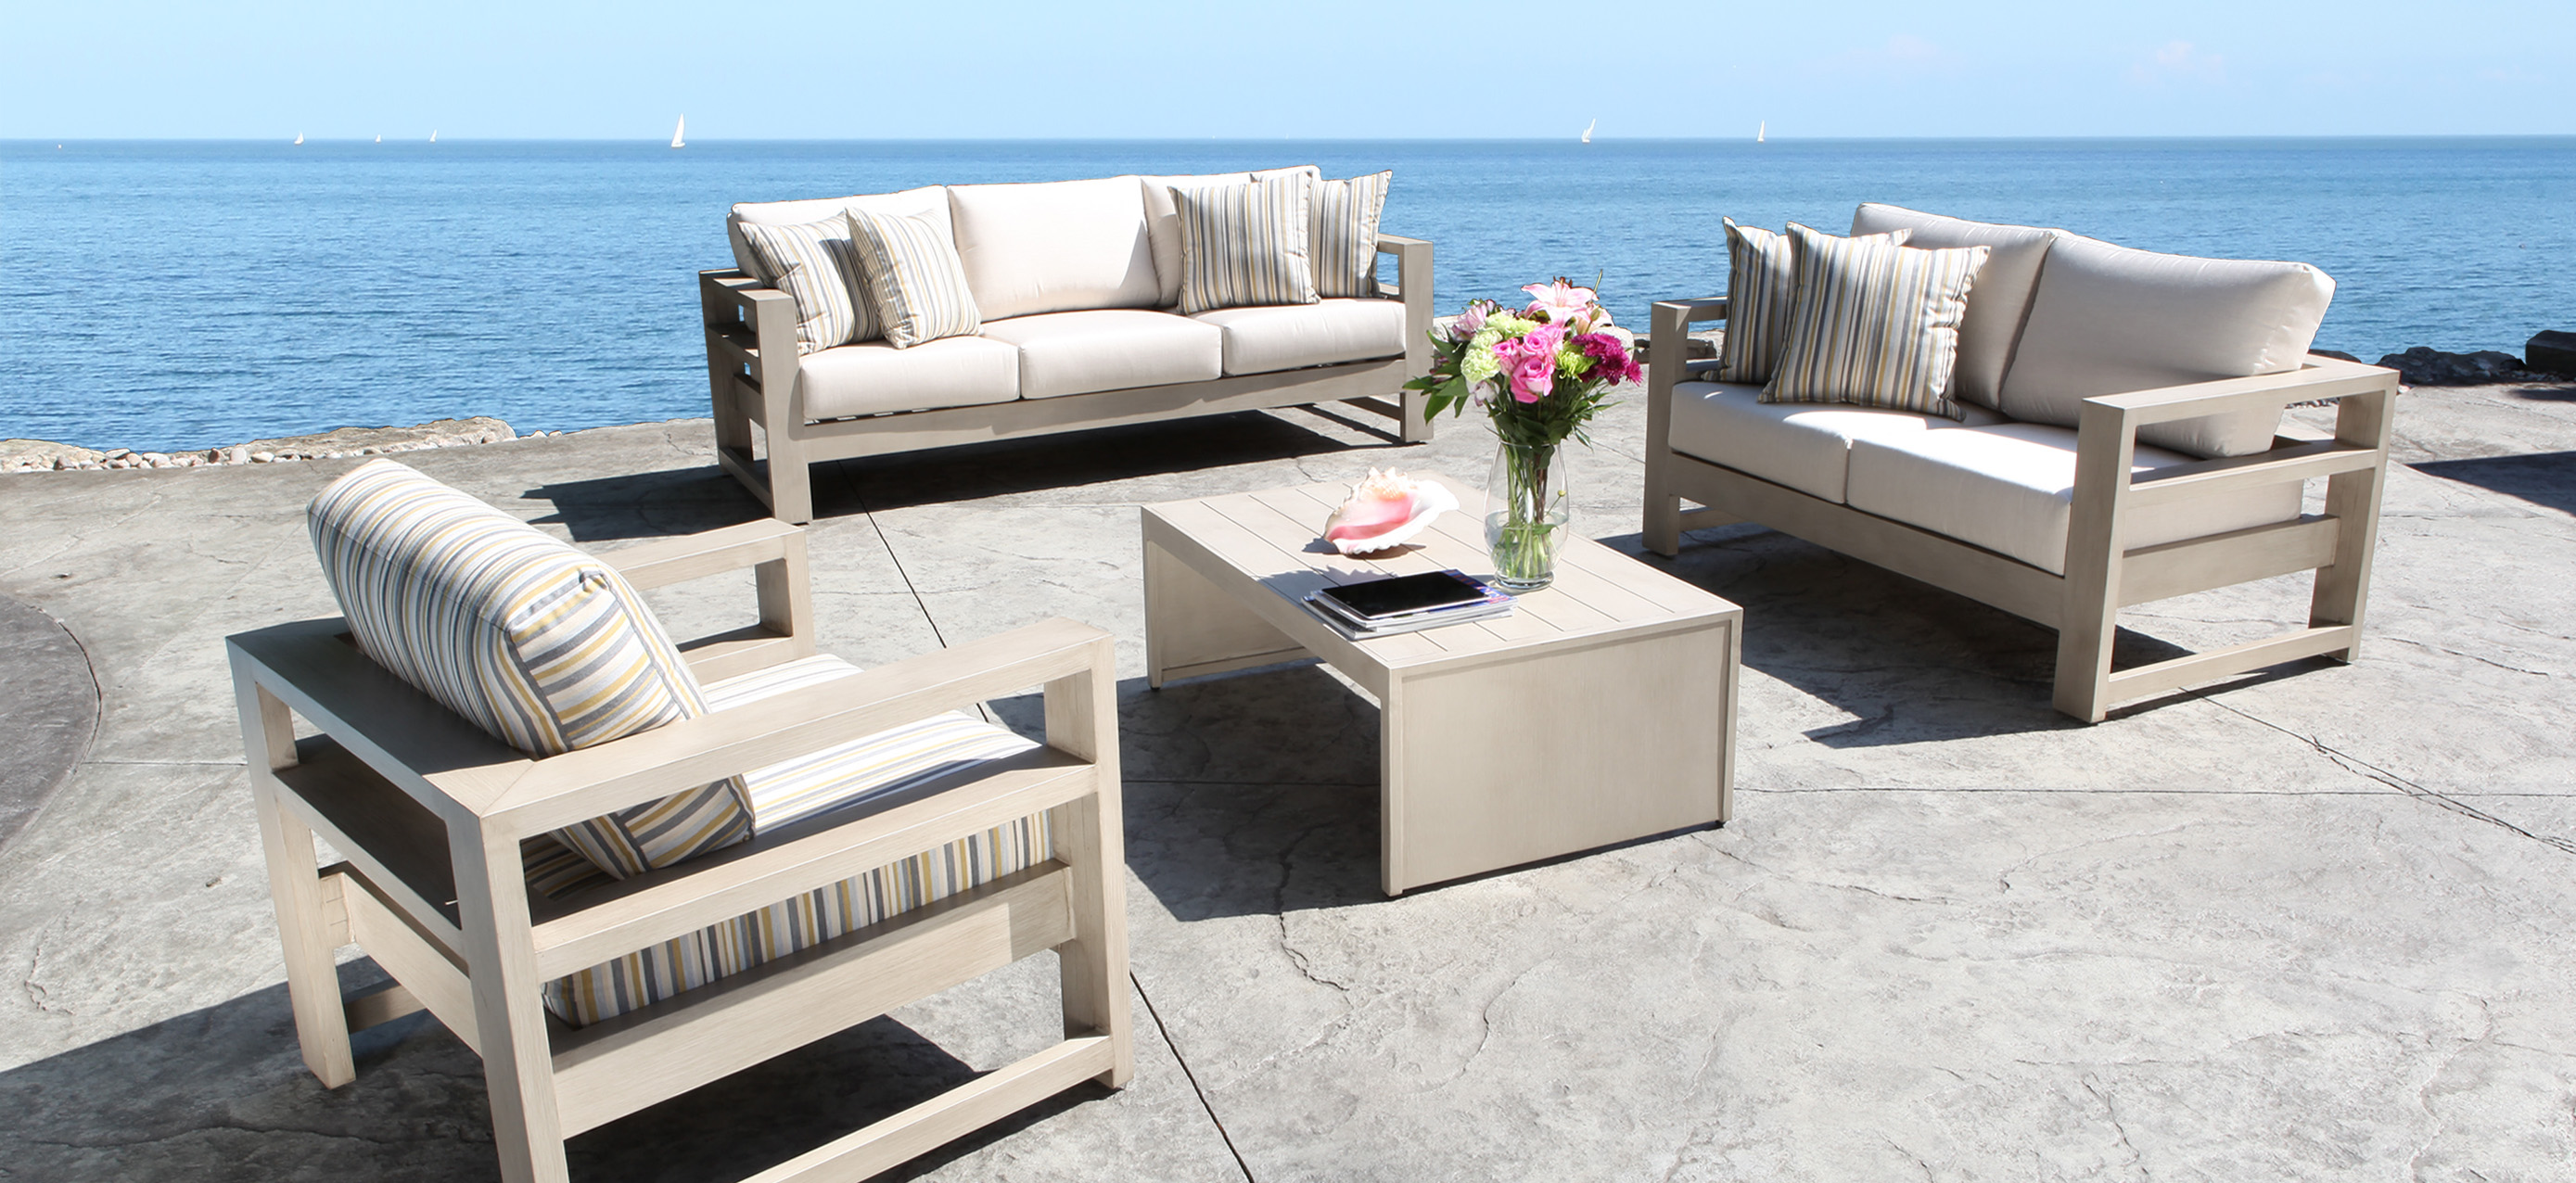 Elegant Aura Cast Aluminum Patio Furniture Conversation Set with A Modern Luxury modern aluminum patio furniture